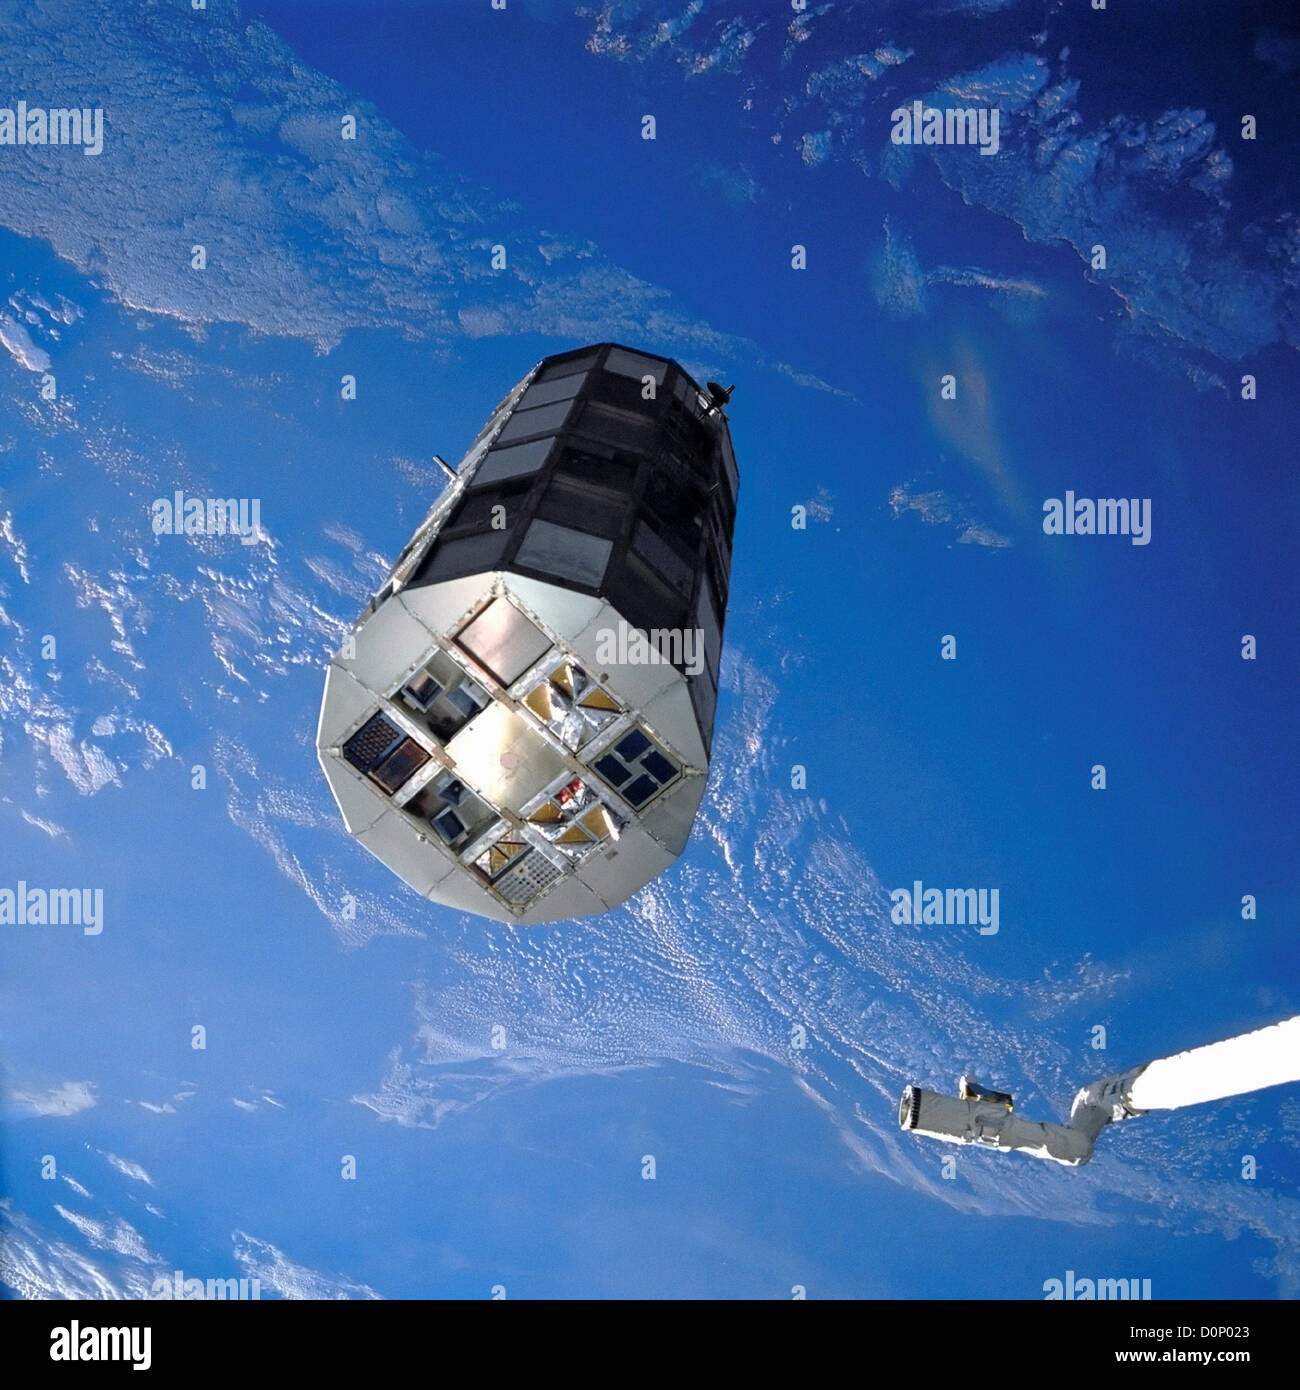 Long Duration Exposure Facility in Orbit - Stock Image